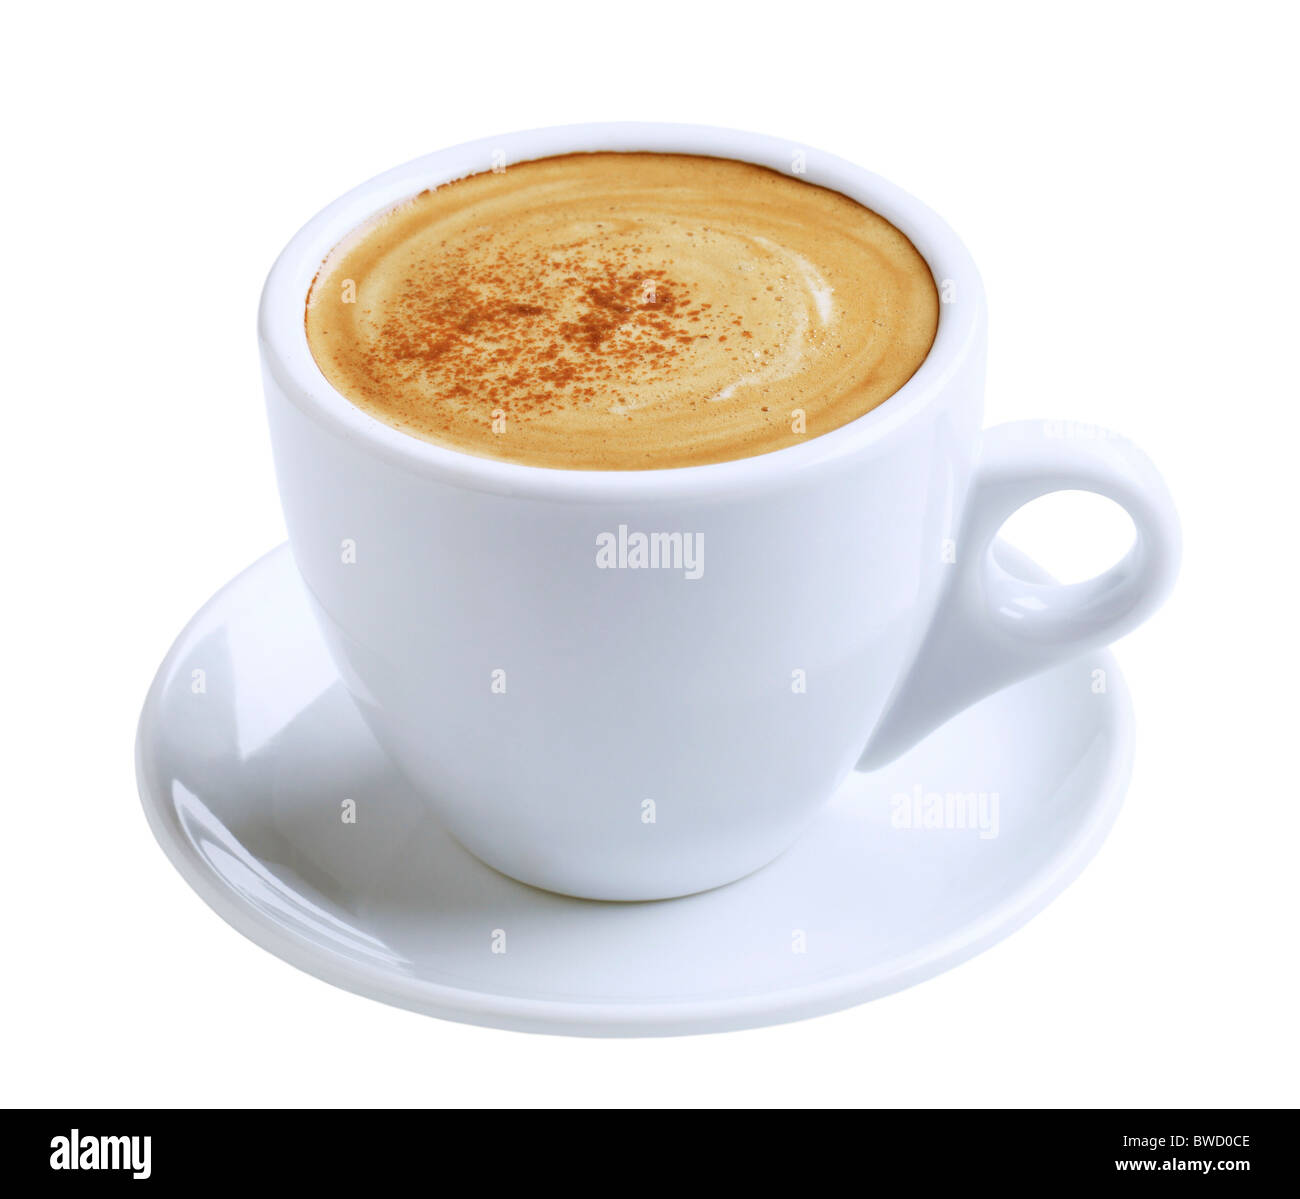 Cup of coffee with froth and cinnamon - Stock Image